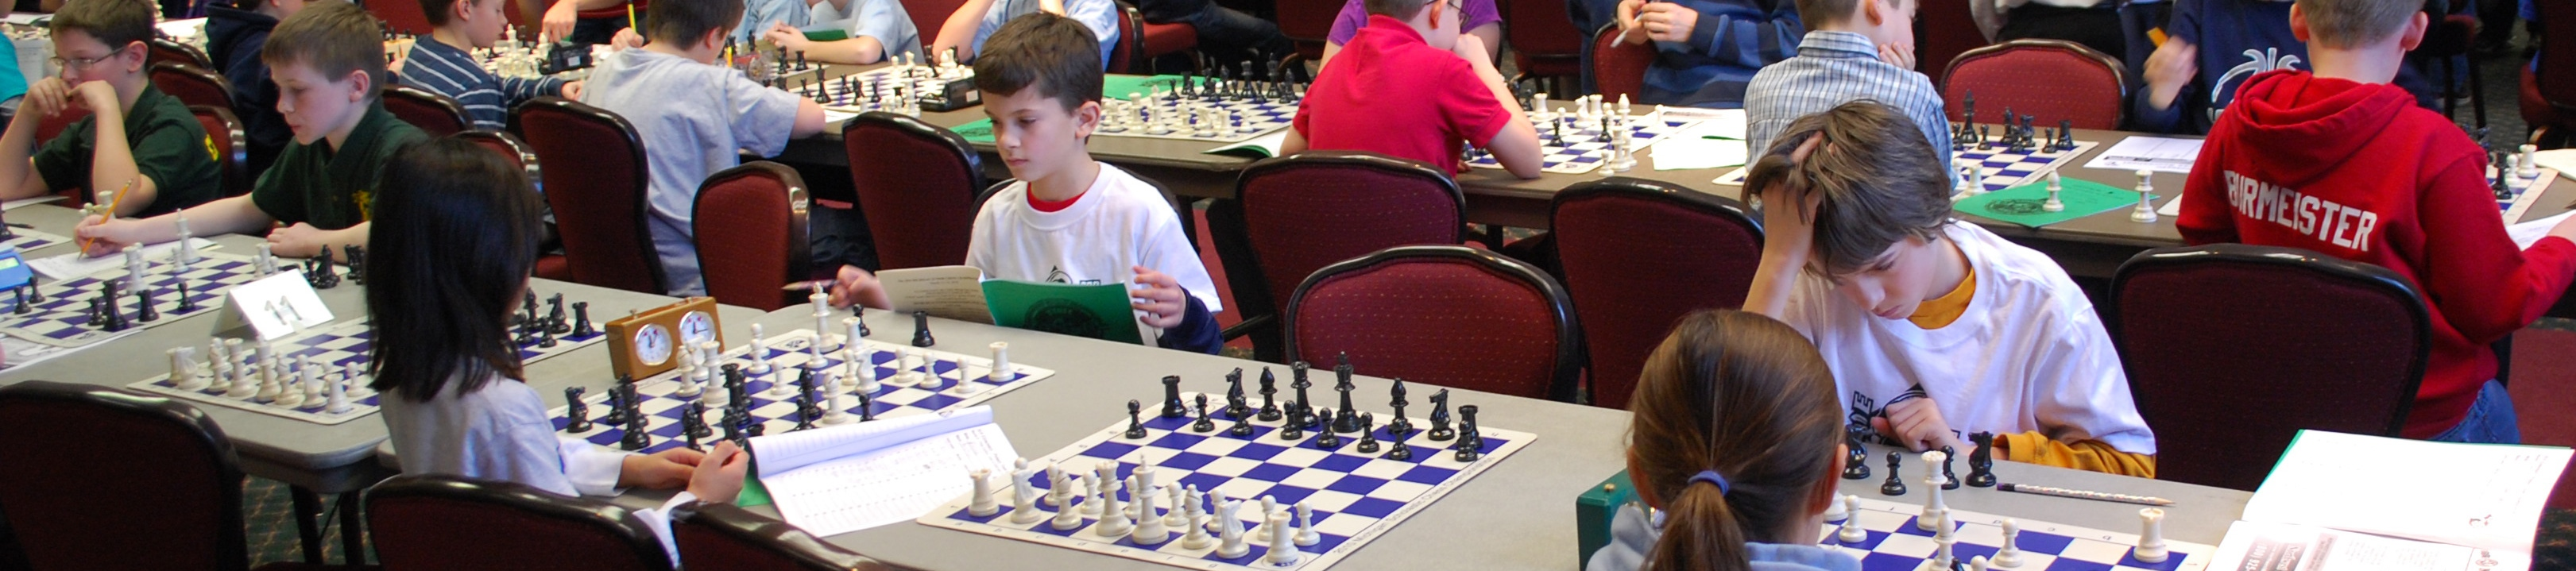 Kids playing in chess tournament.